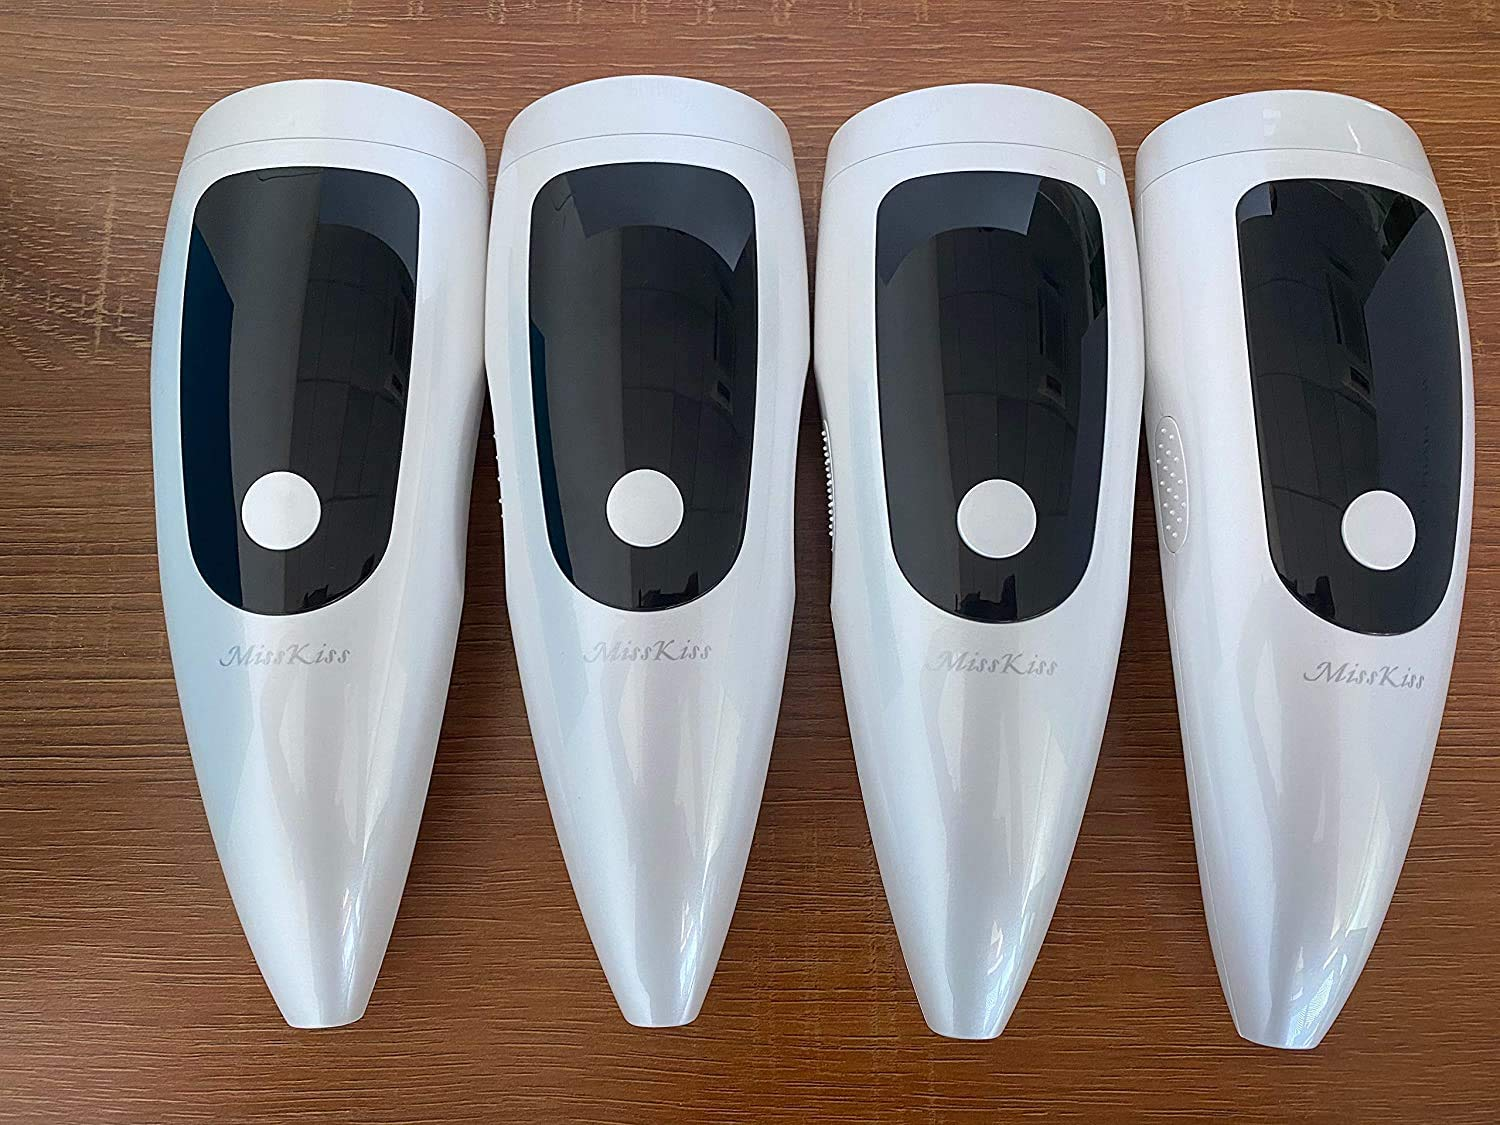 MissKiss IPL Permanent Painless Hair Removal Device, Depilation appliances, electric and non-electric Whole Body Painless Professional Hair Remover Device At-Home for Female